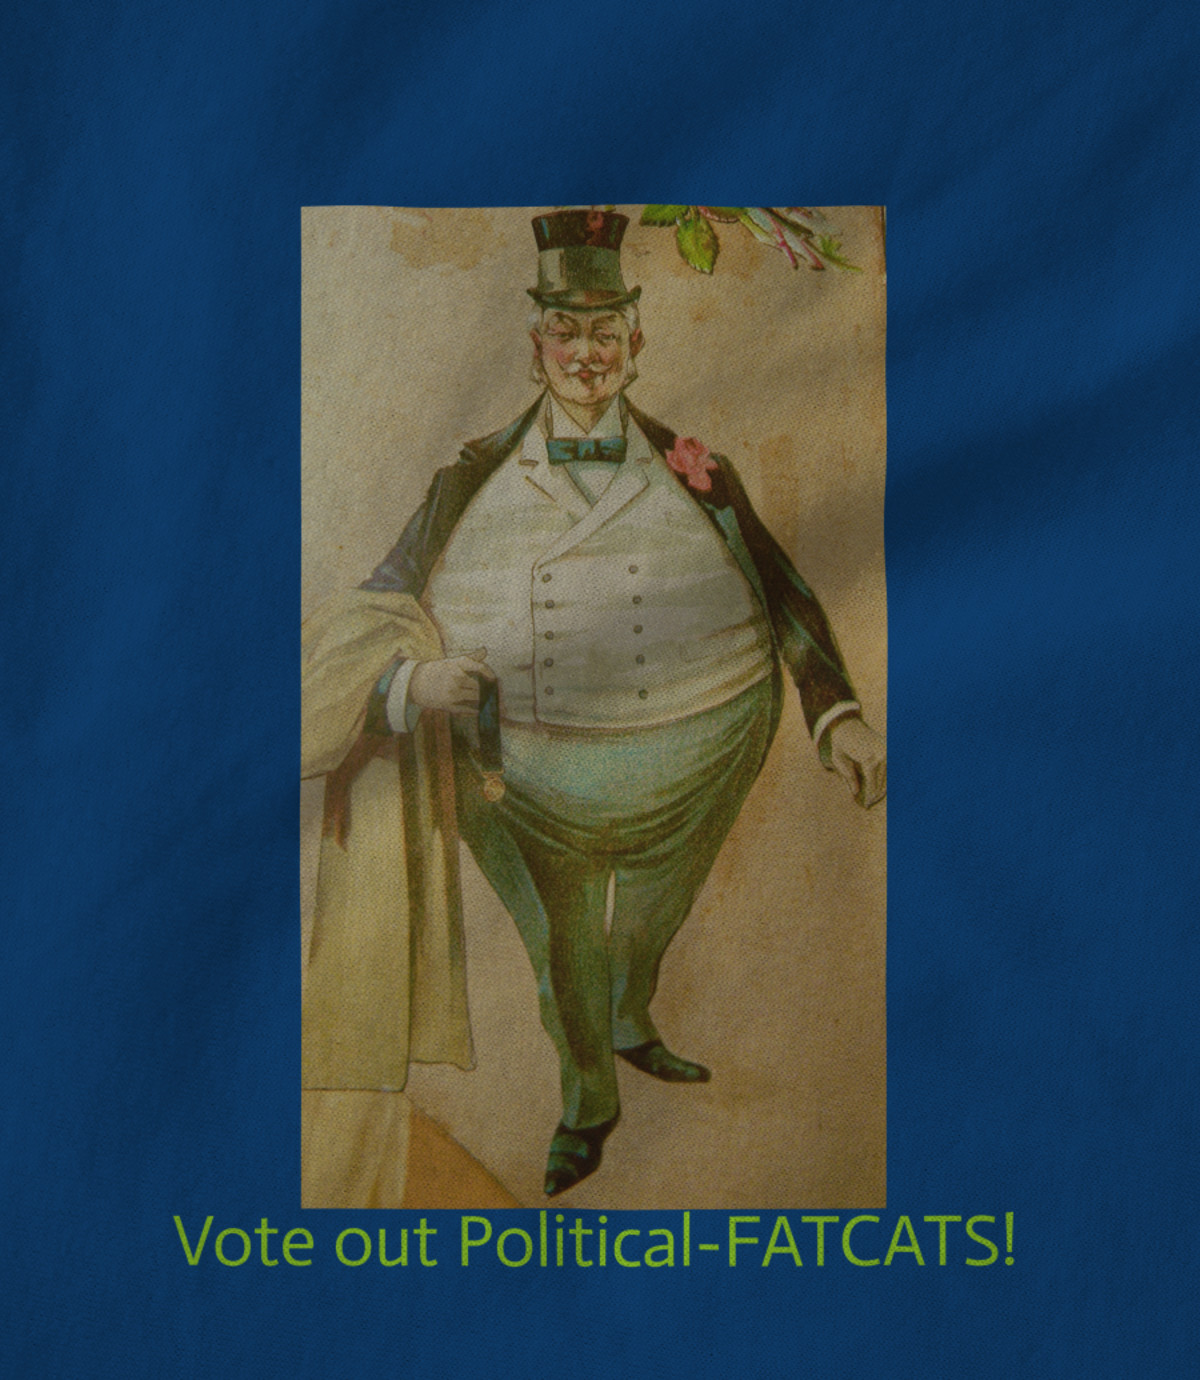 Matthew f  blowers iii  c  2017 vote out political fatcats  1506281244